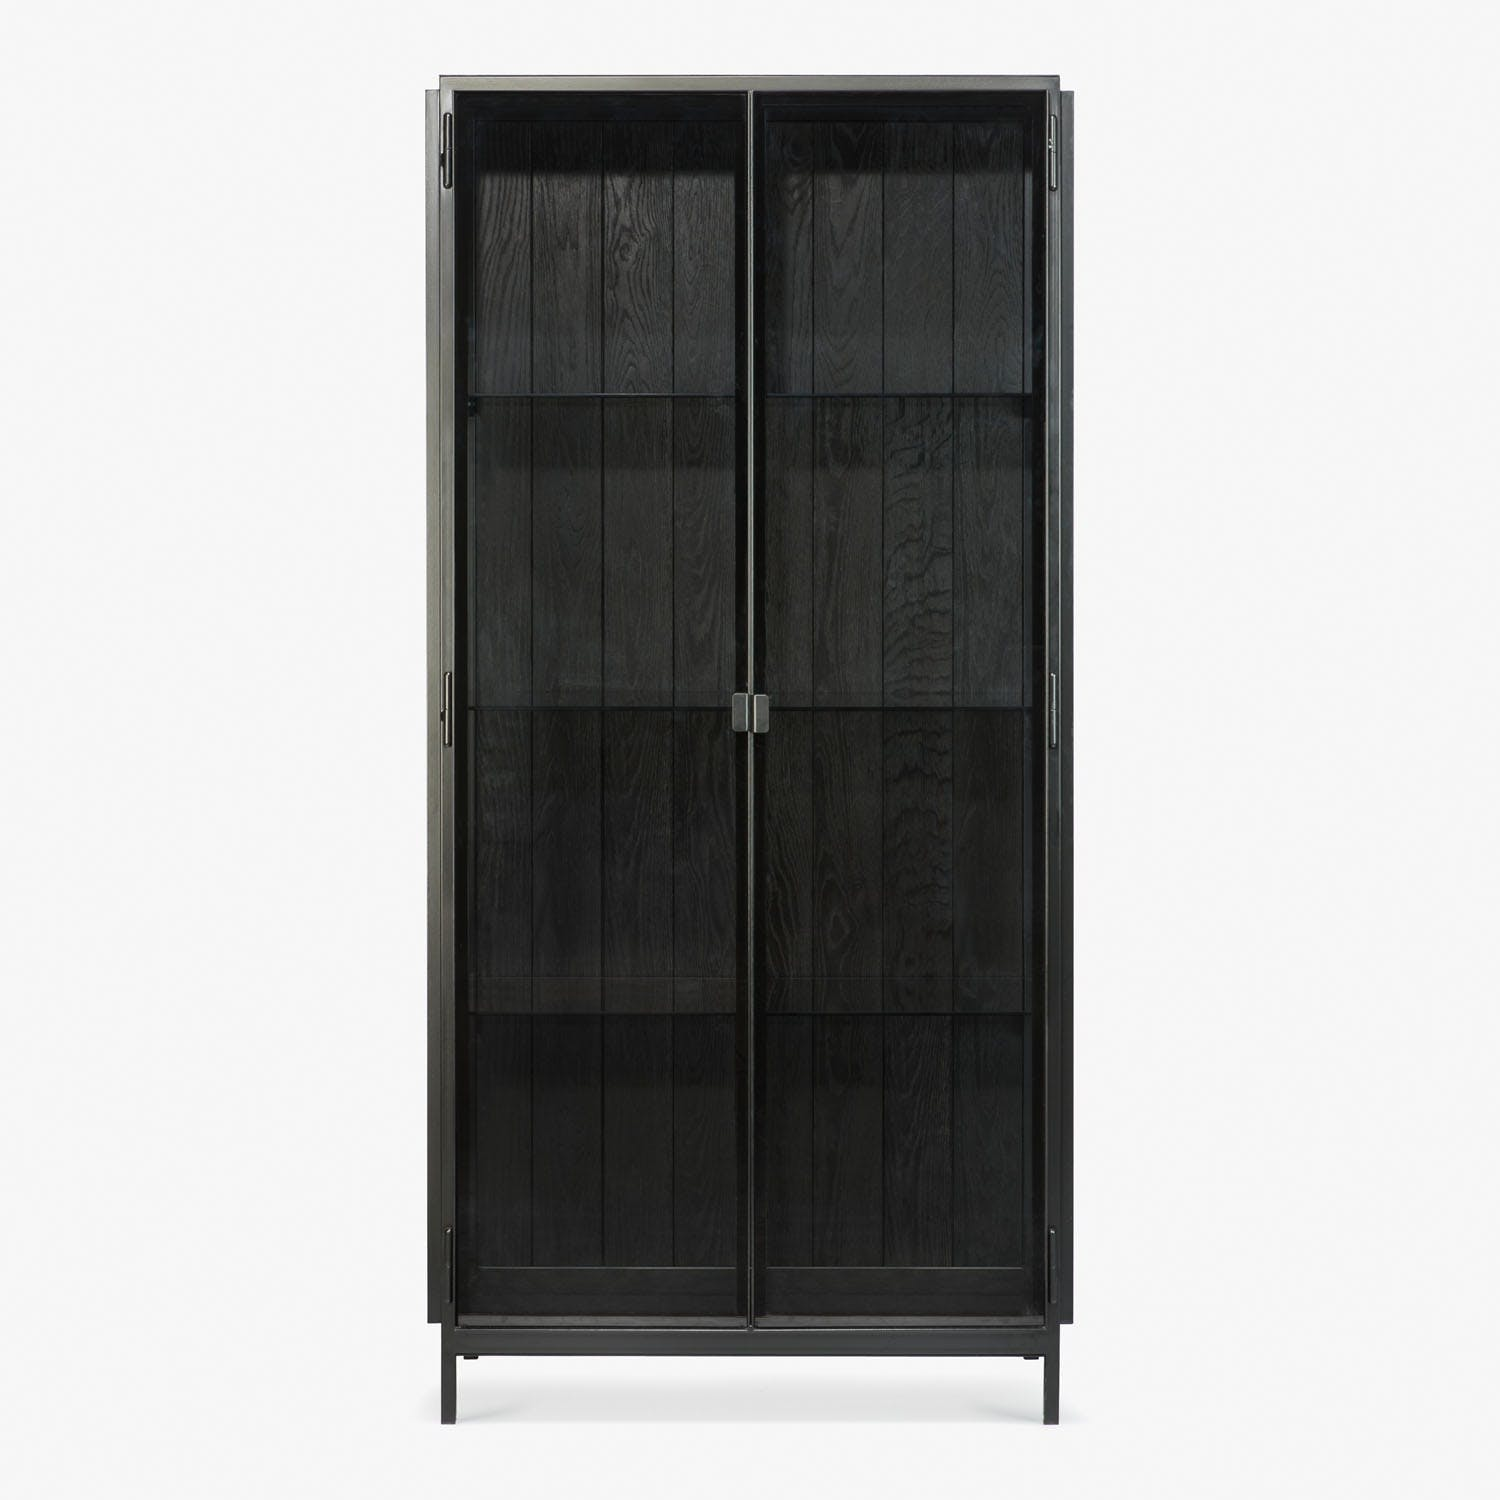 Ethnicraft Anders Tall Cabinet Black